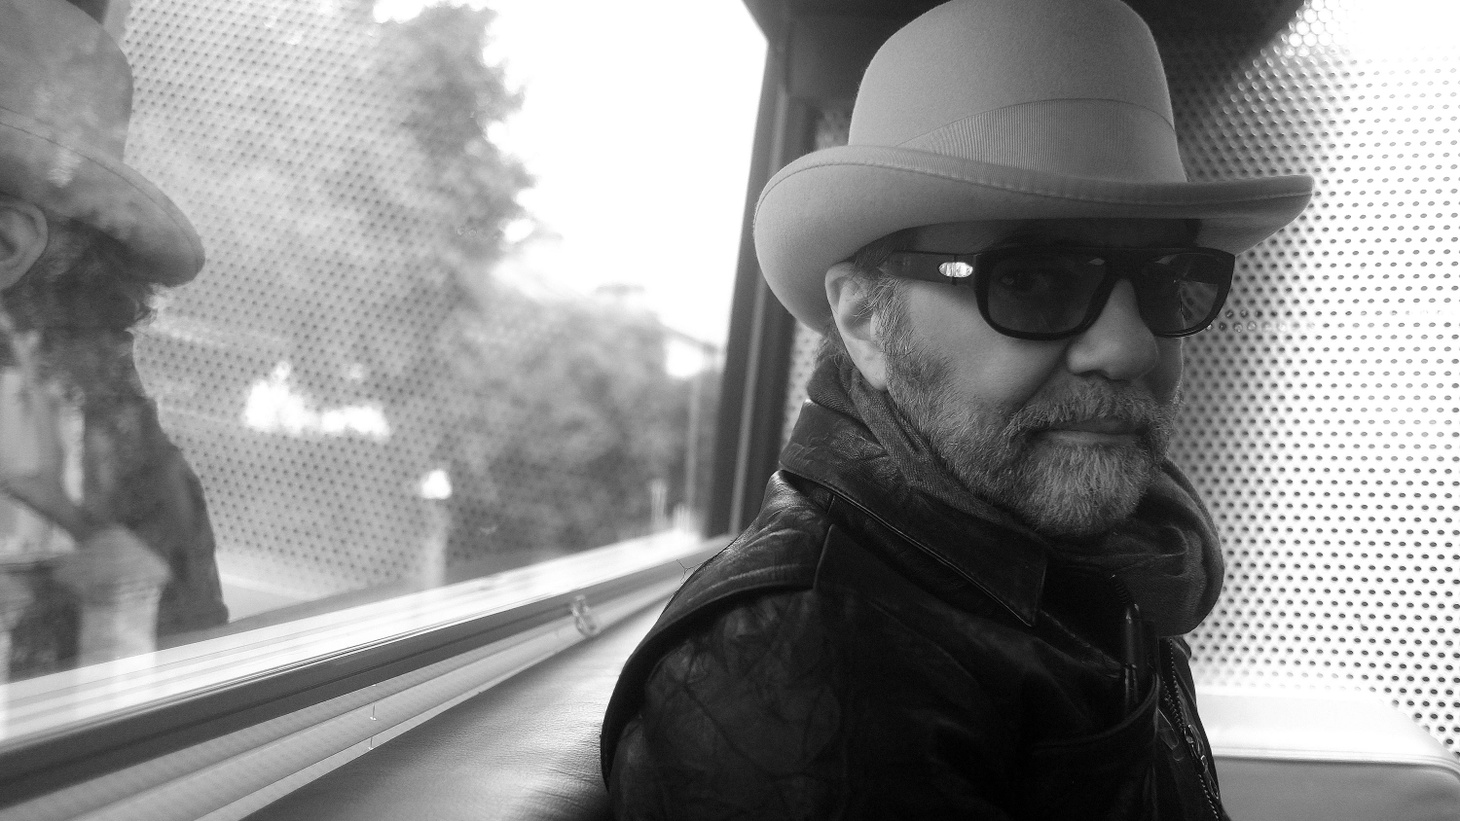 Iconic producer Daniel Lanois has an extraordinary musical palette, having worked with everyone from Brian Eno to U2, yet he unleashes his own sound in his solo work.